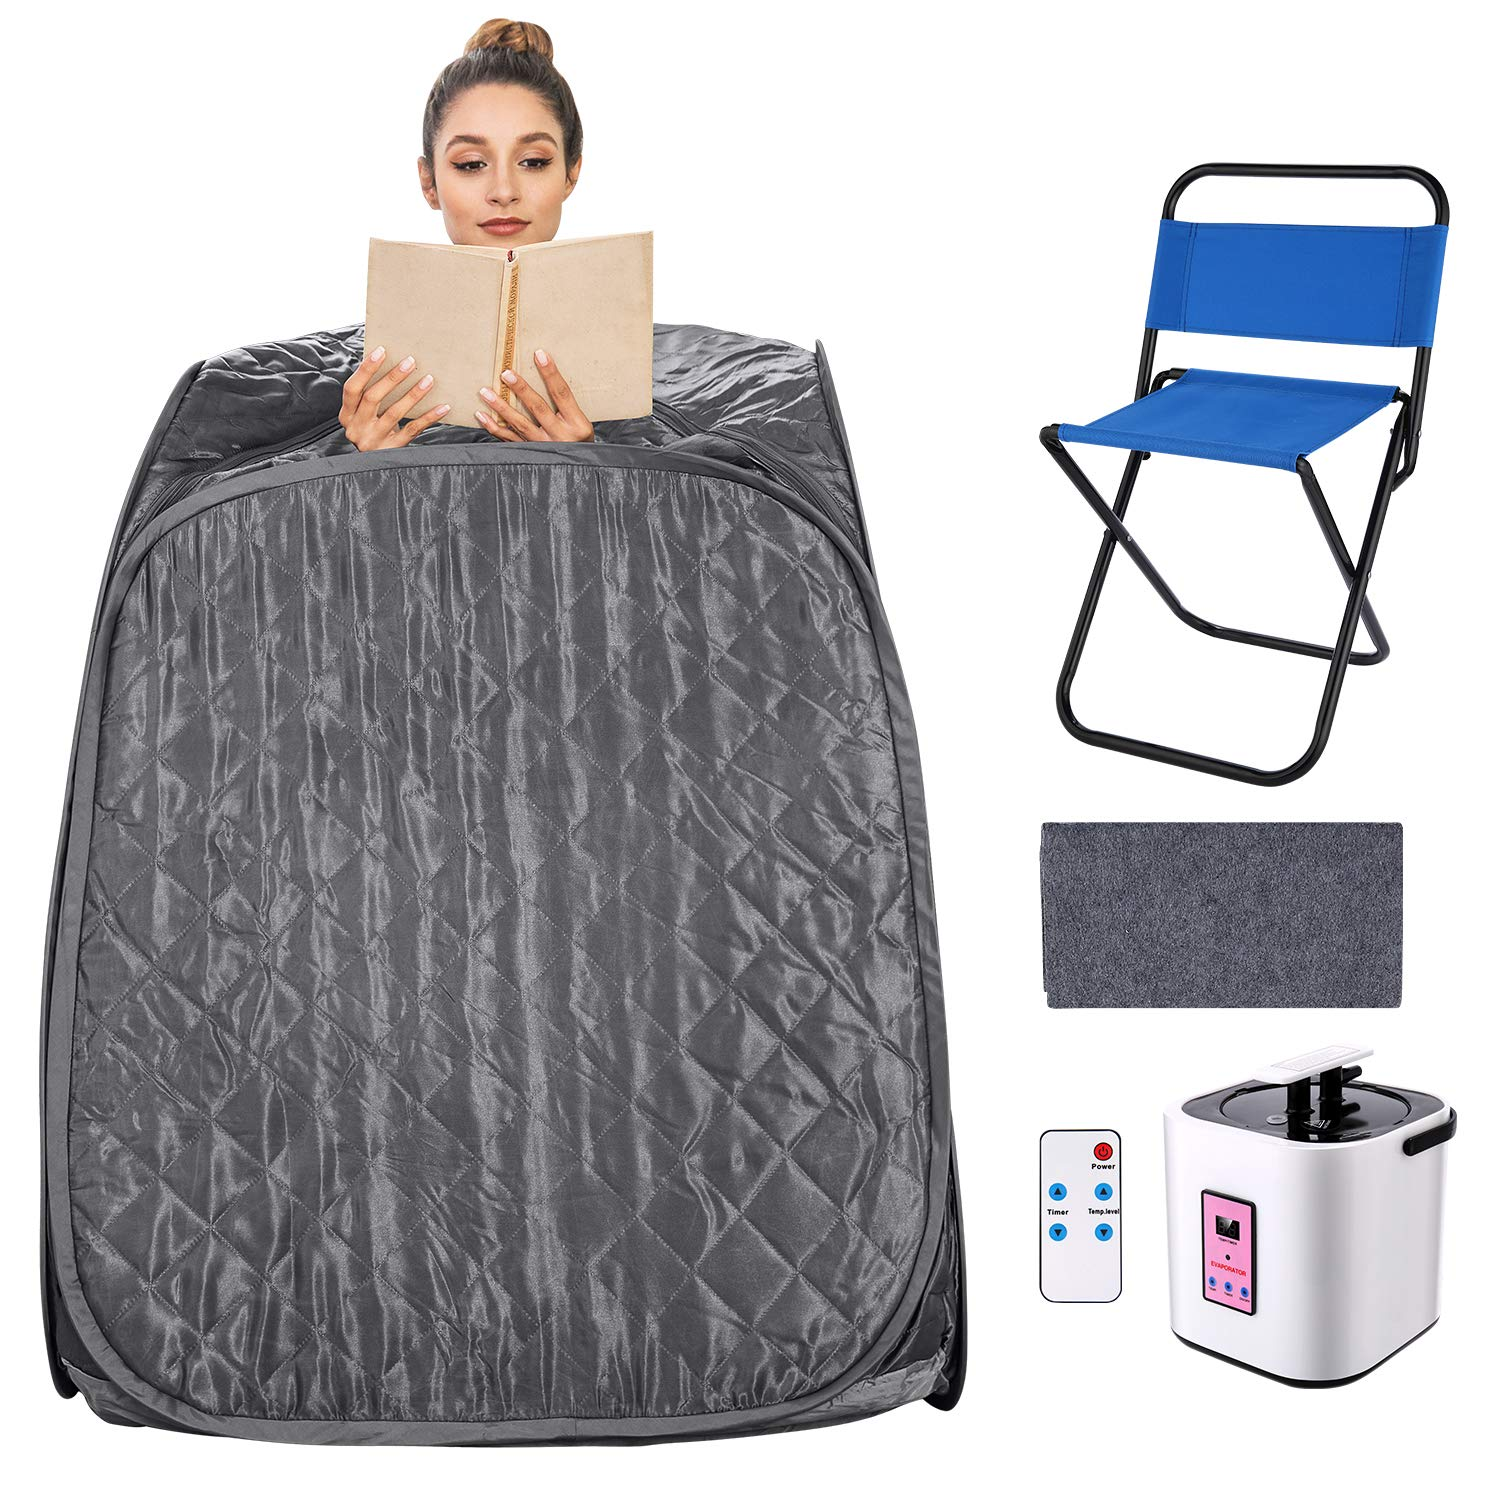 elifine Portable Steam Sauna Spa Home 2L Personal Therapeutic Sauna with Remote Control One Person Sauna Tent with Foldable Chair Timer (Gray)